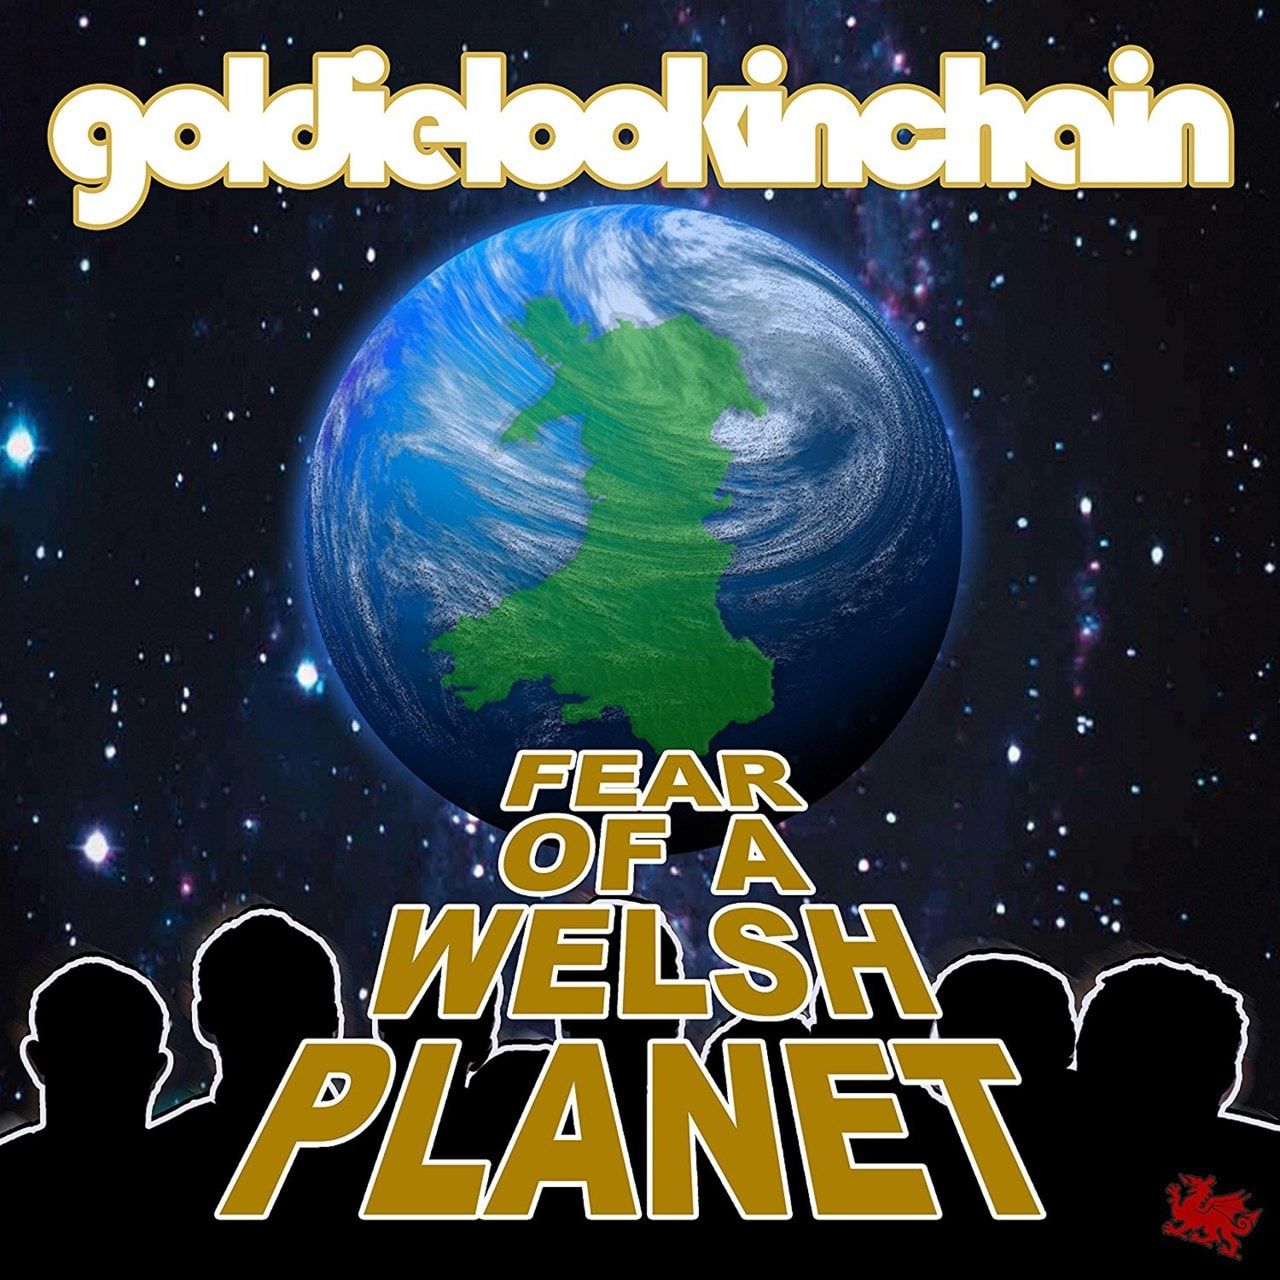 Fear of a Welsh Planet - 1